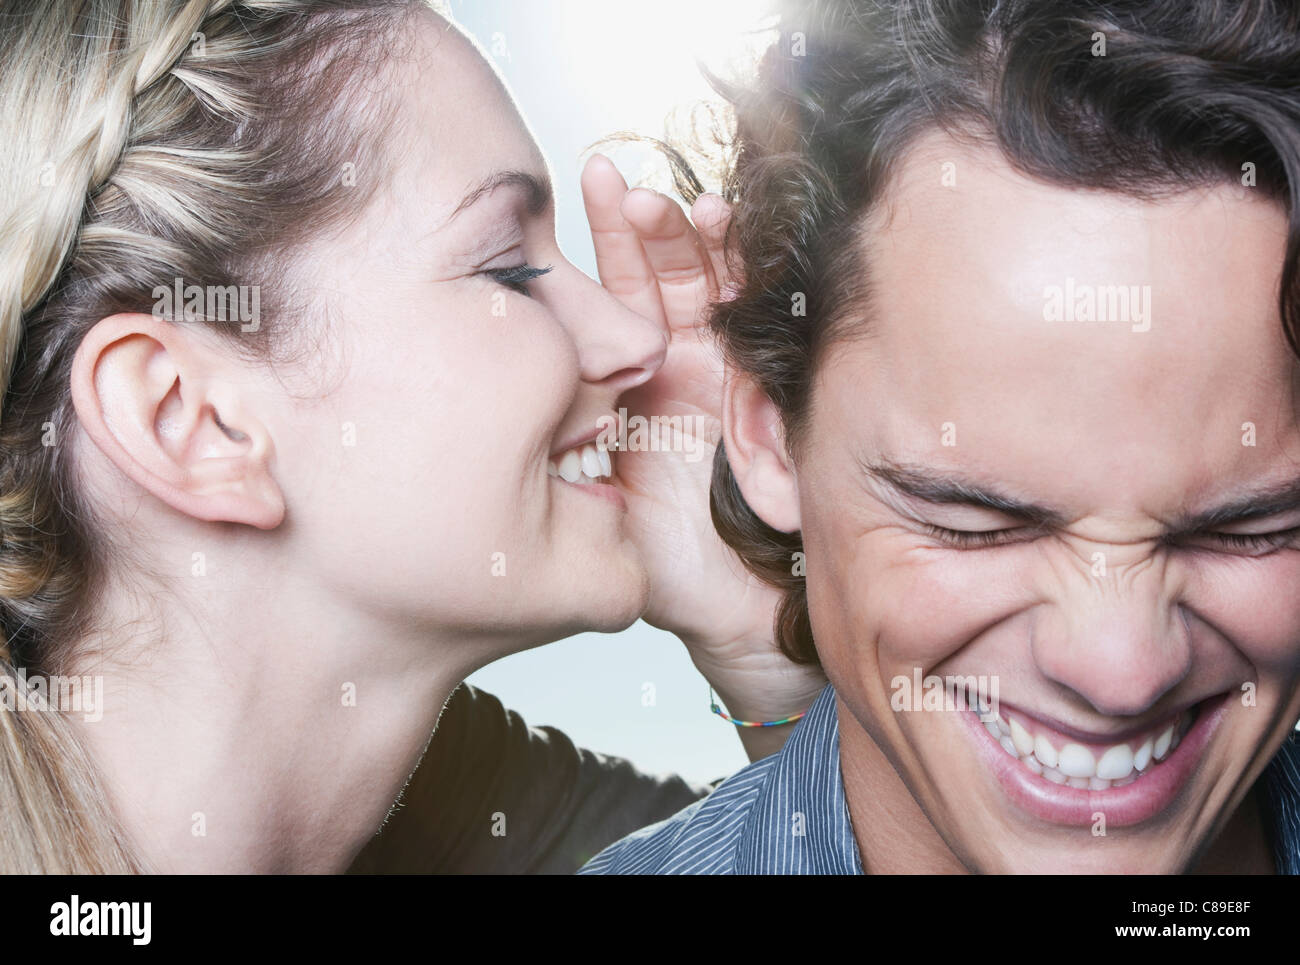 Italy, Tuscany, Young woman whispering in man's ear, close up - Stock Image